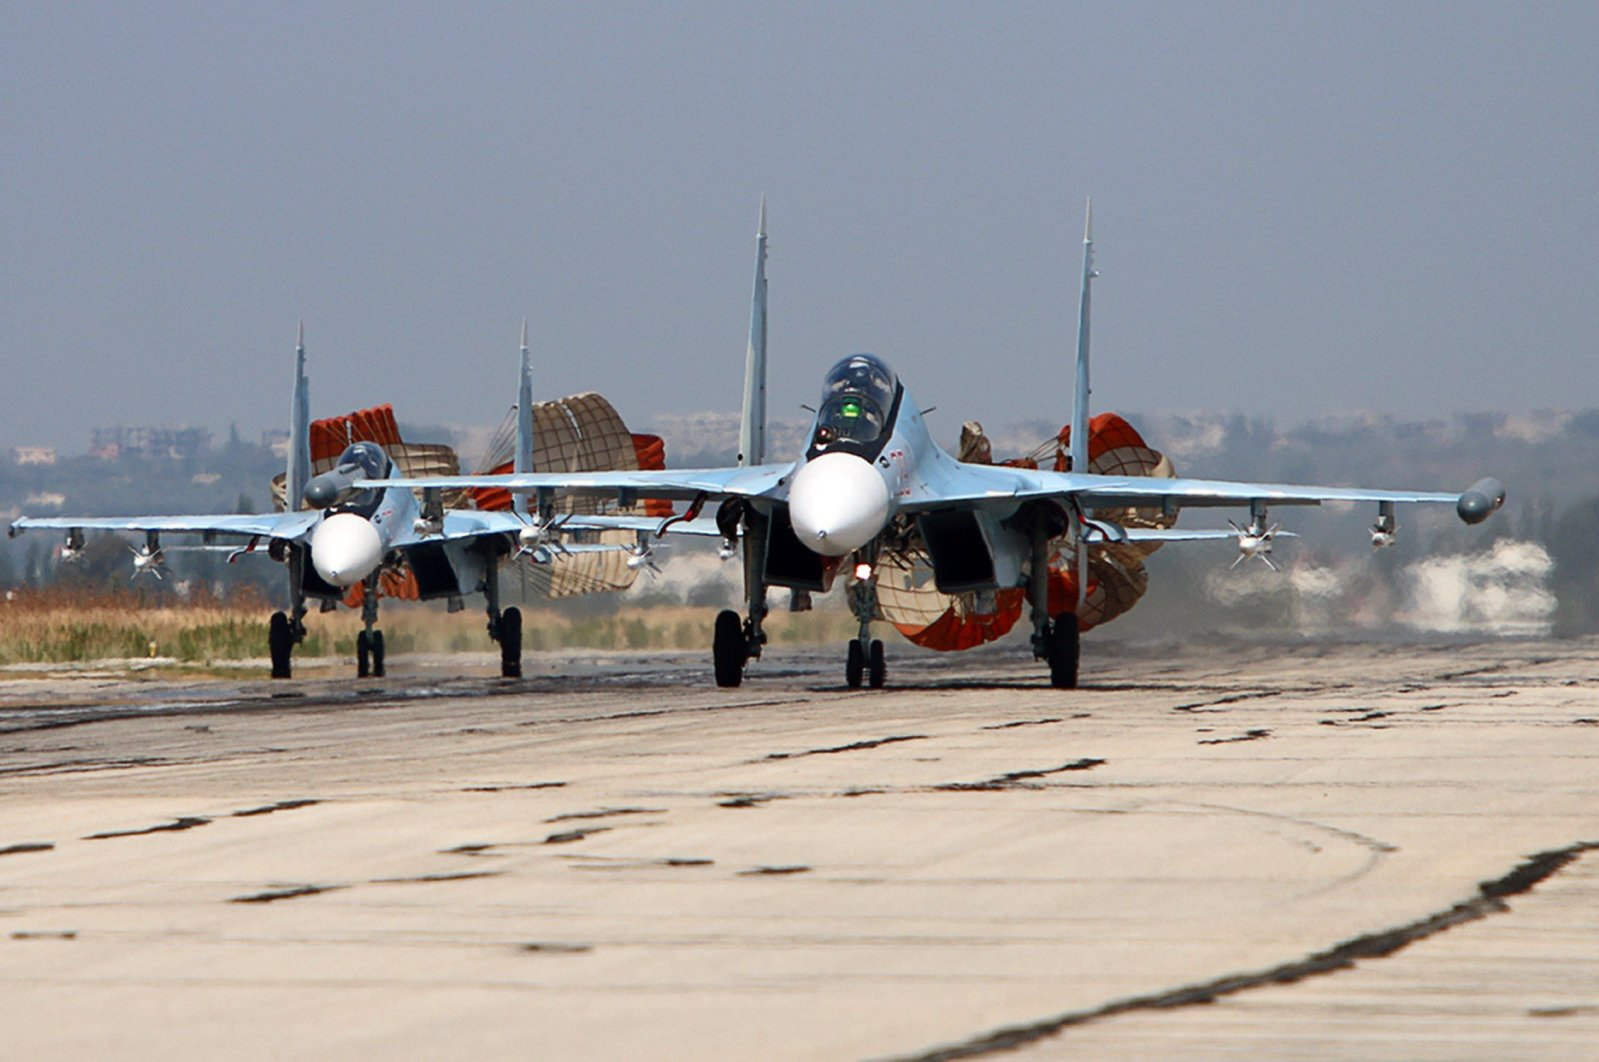 A picture taken on October 3, 2015 shows Russian Sukhoi SU-30 SM jet fighters landing on a runway at the Hmeimim airbase in the Syrian province of Latakia. (AFP Photo)